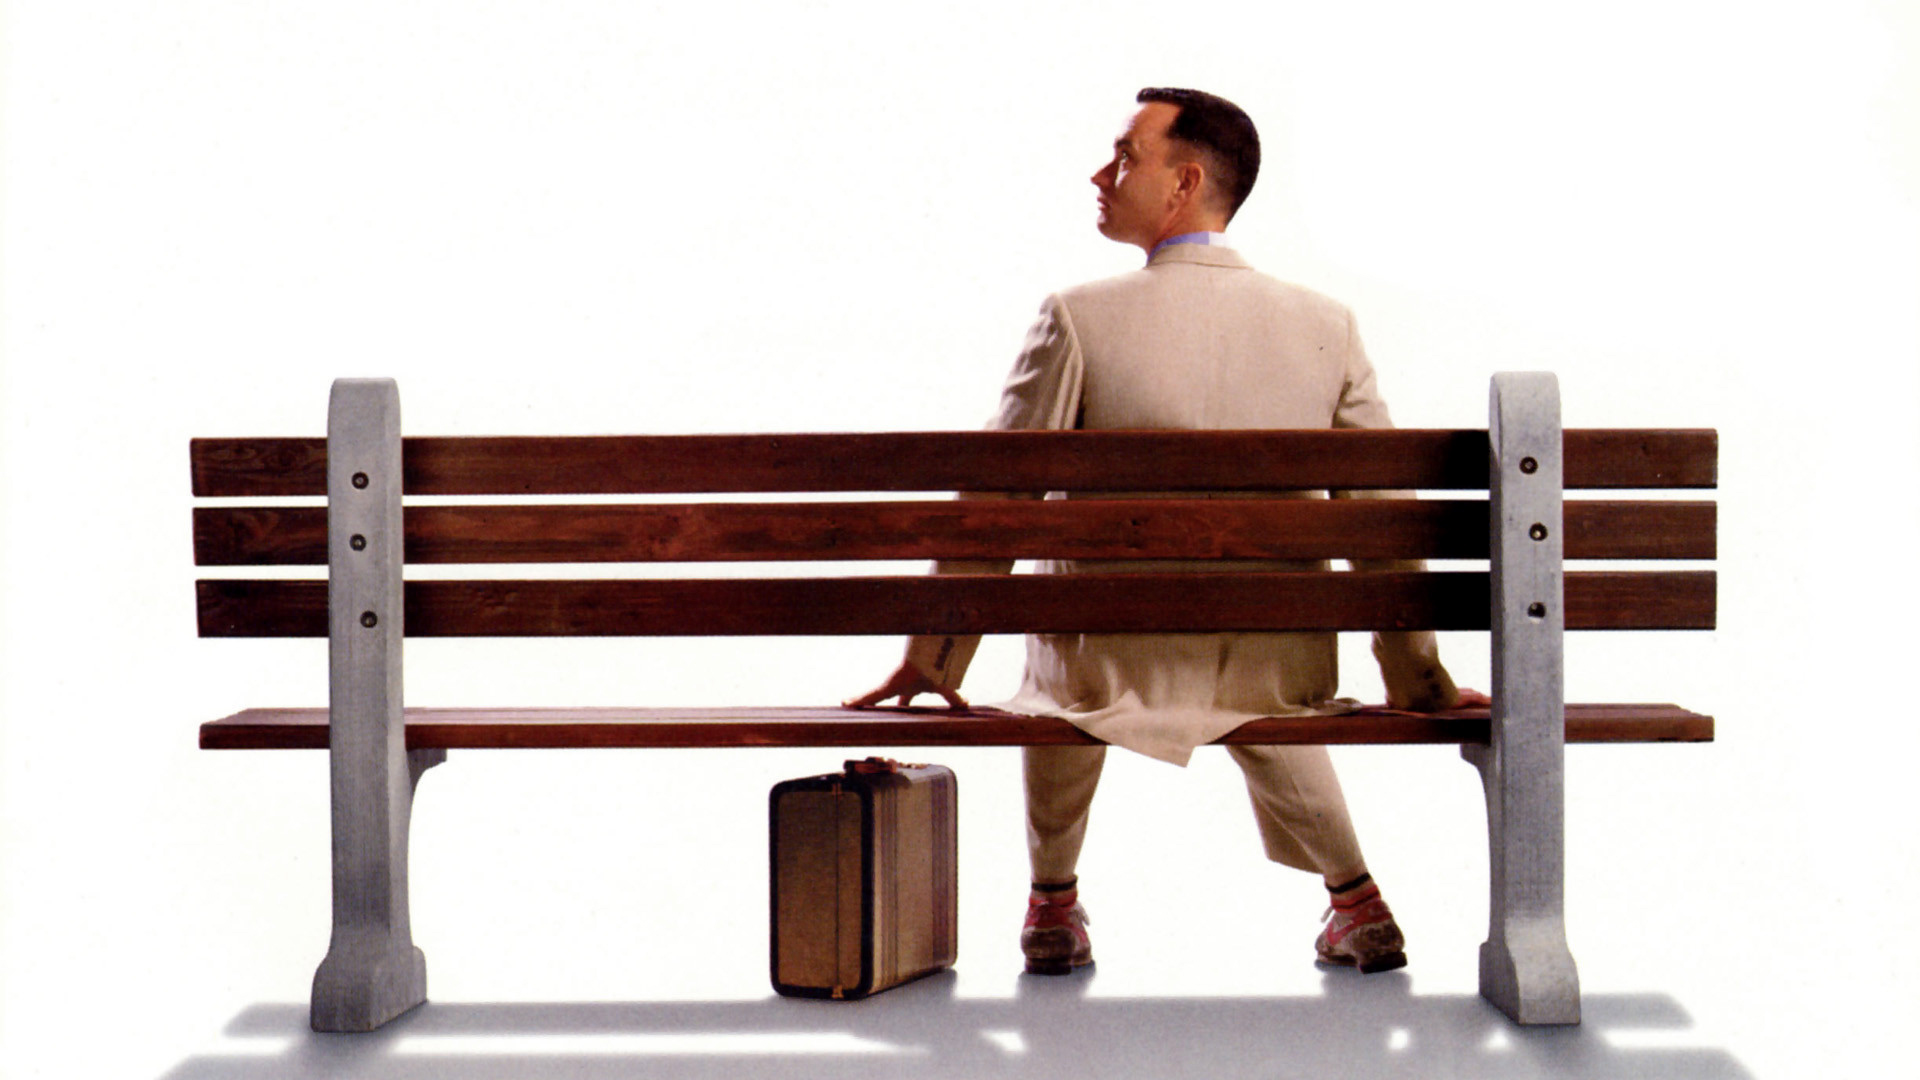 click to free download the wallpaper--Best Movie Posts for Desktop, Forrest Gump Poster, Never Put an End to Pursuit, Win and Success Await